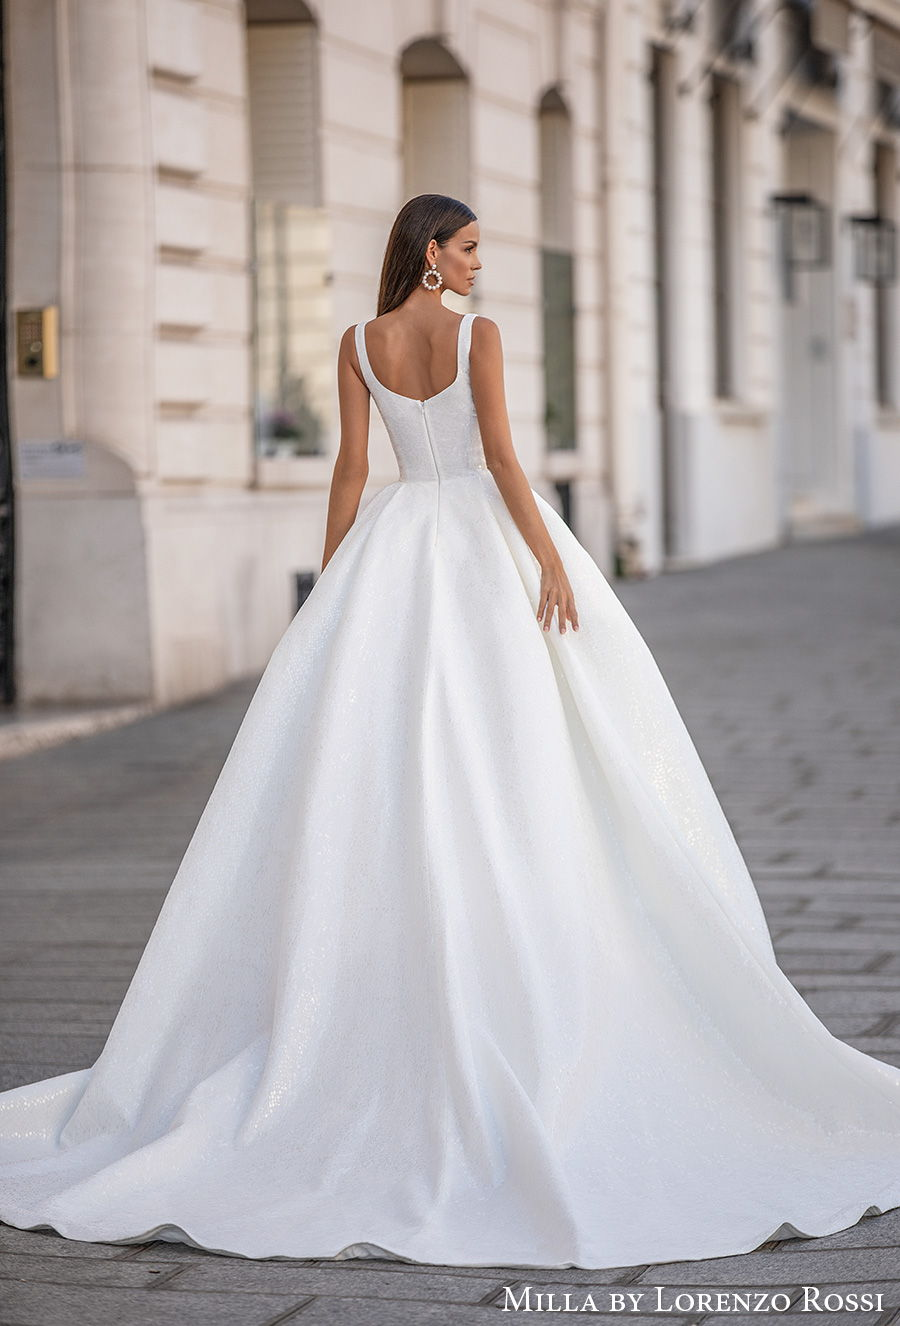 milla lorenzo rossi 2021 bridal sleeveless with strap square neckline simple minimalist elegant ball gown a  line wedding dress mid back chapel train (gabrielle) bv